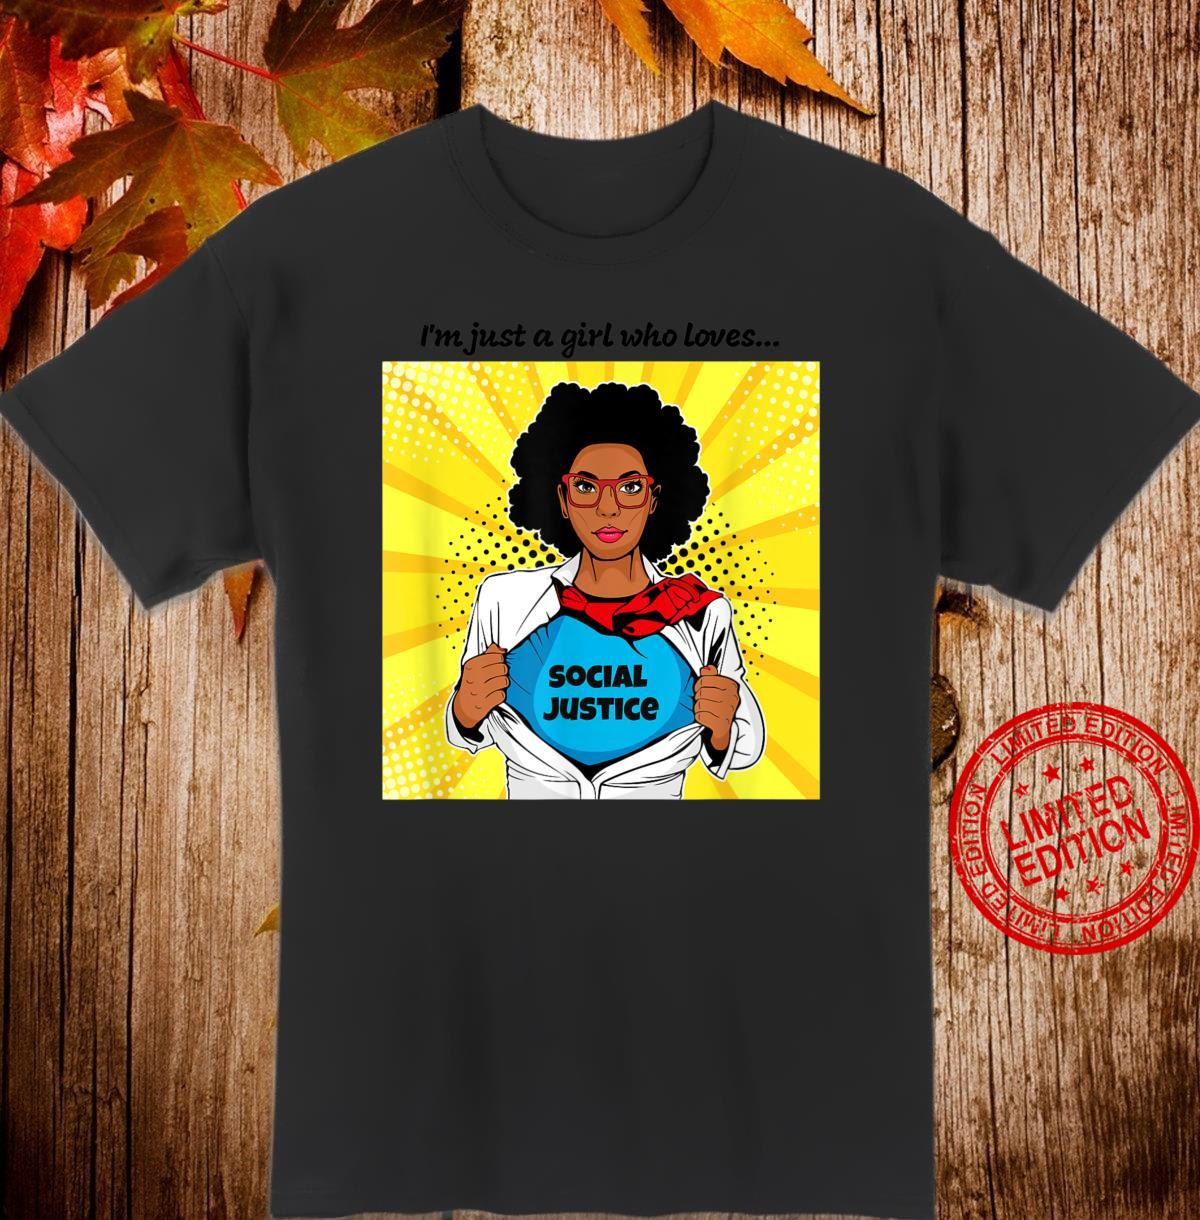 I'm Just a Girl Who Loves Social Justice Shirt